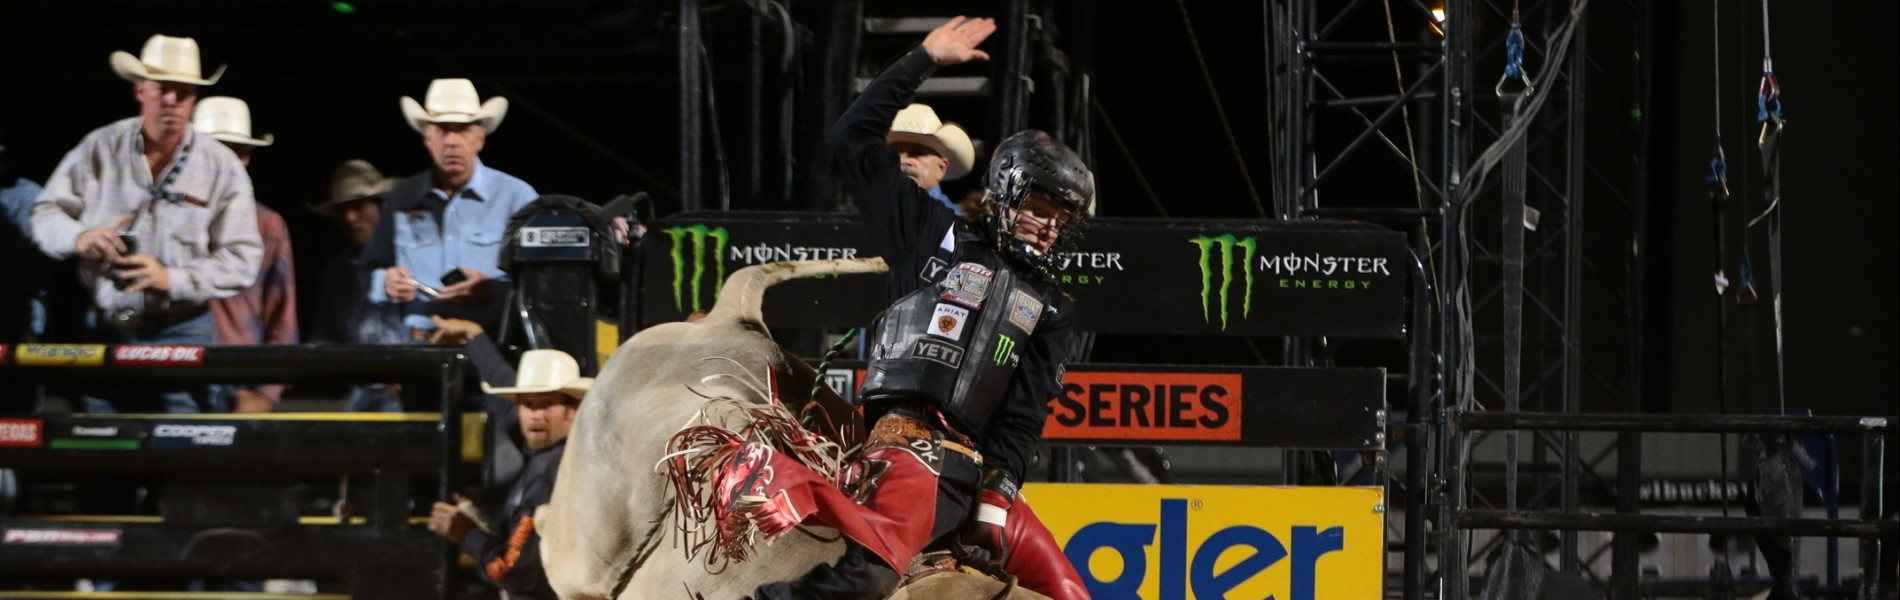 Derek Kolbaba rides Jerry Brown Bucking Bulls's Tso-Op for 83 during the first round of the Helldorado Days Last Cowboy Standing Built Ford Tough Series PBR in Des Moines, IA